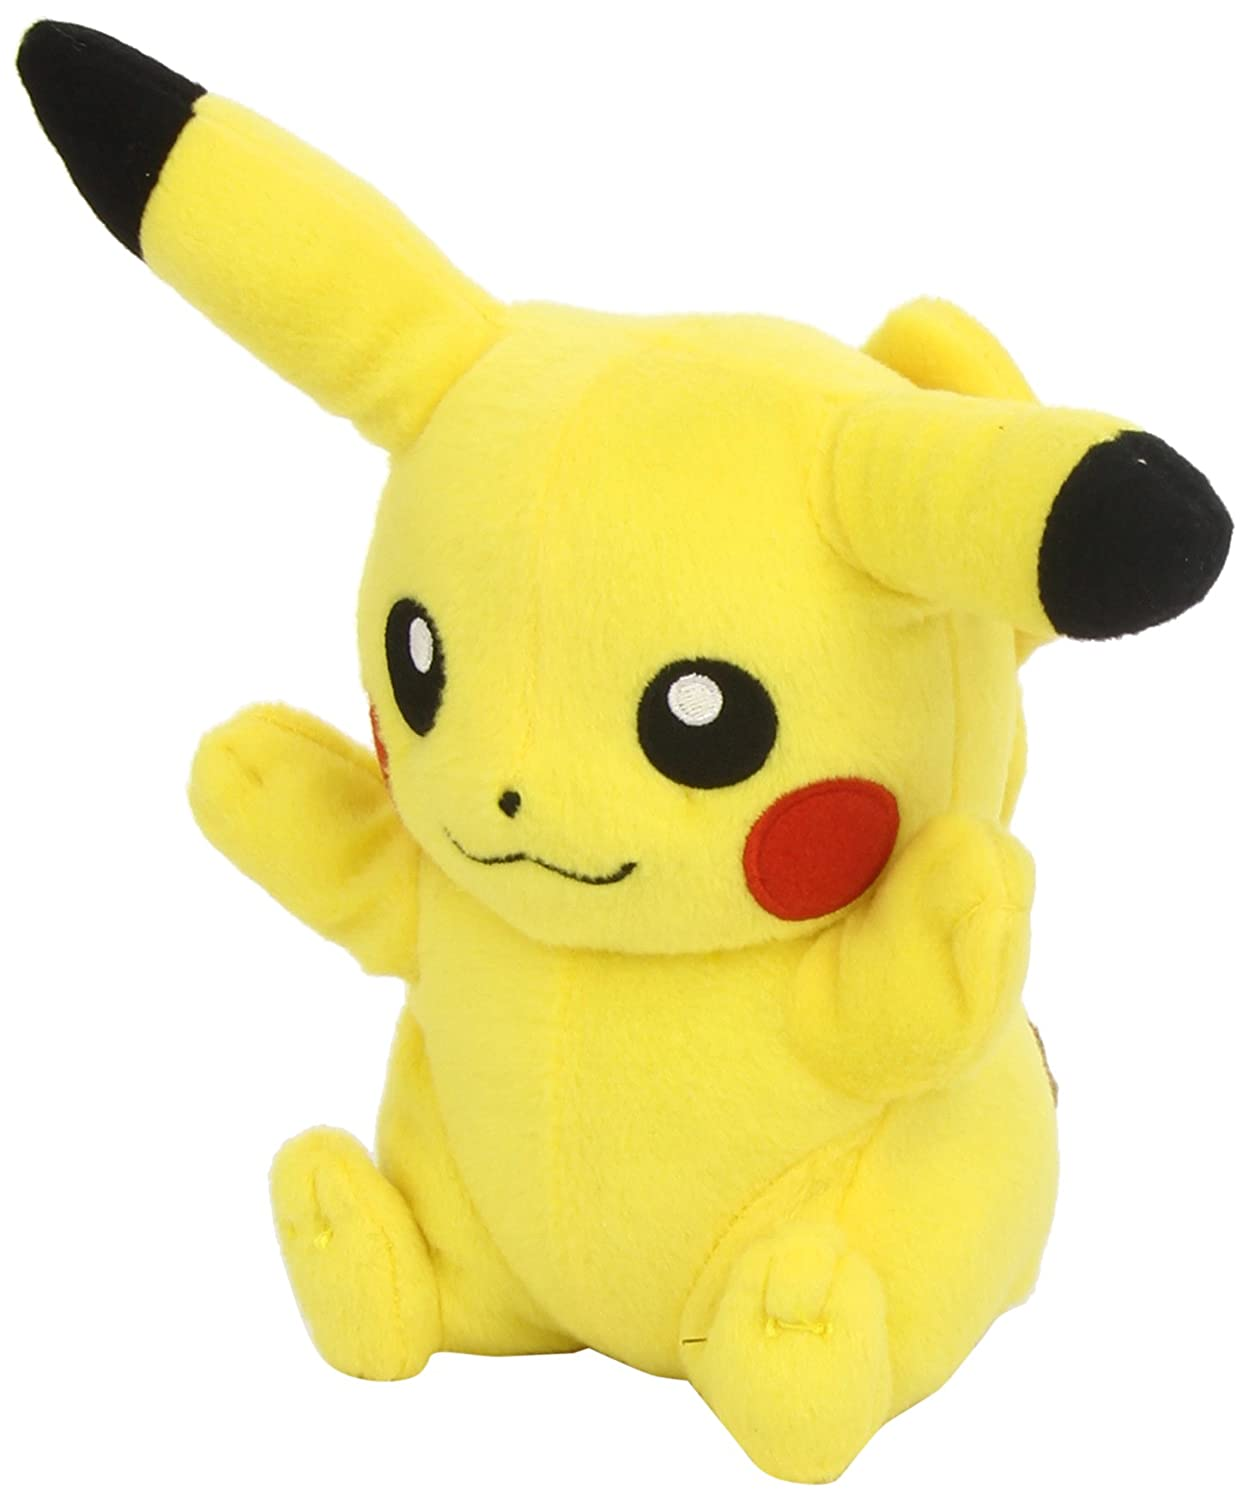 TOMY Pokémon - Animal de peluche Pokemon T18610: Amazon.es: Juguetes y juegos